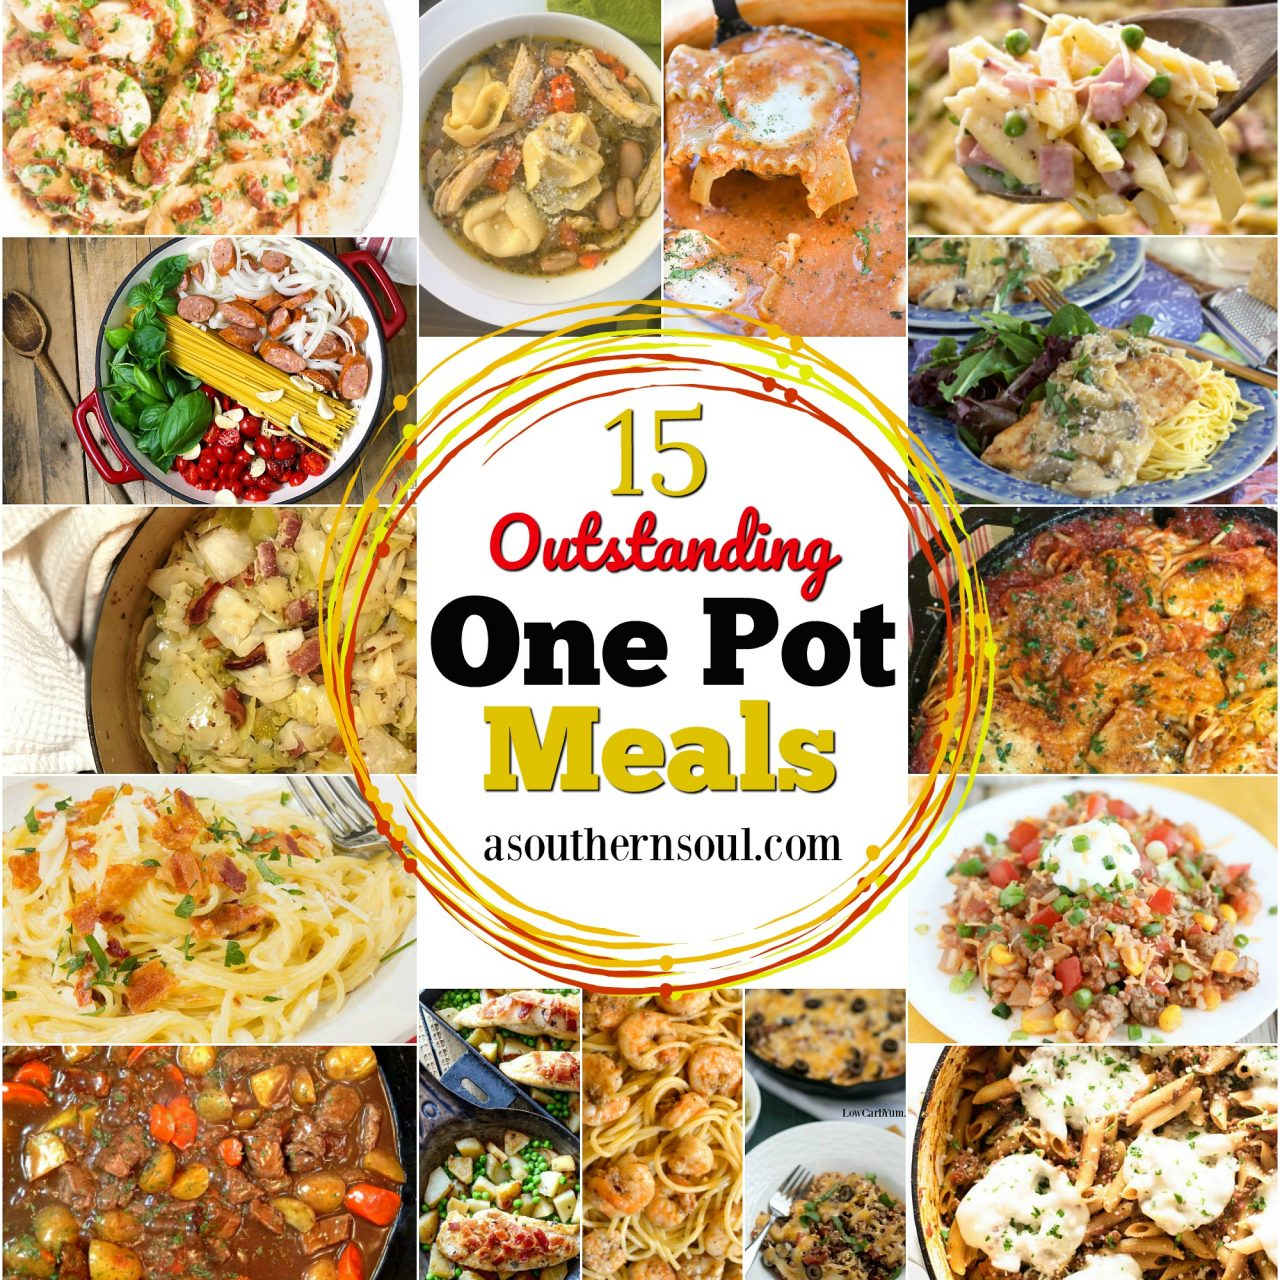 15 Outstanding One Pot Meals